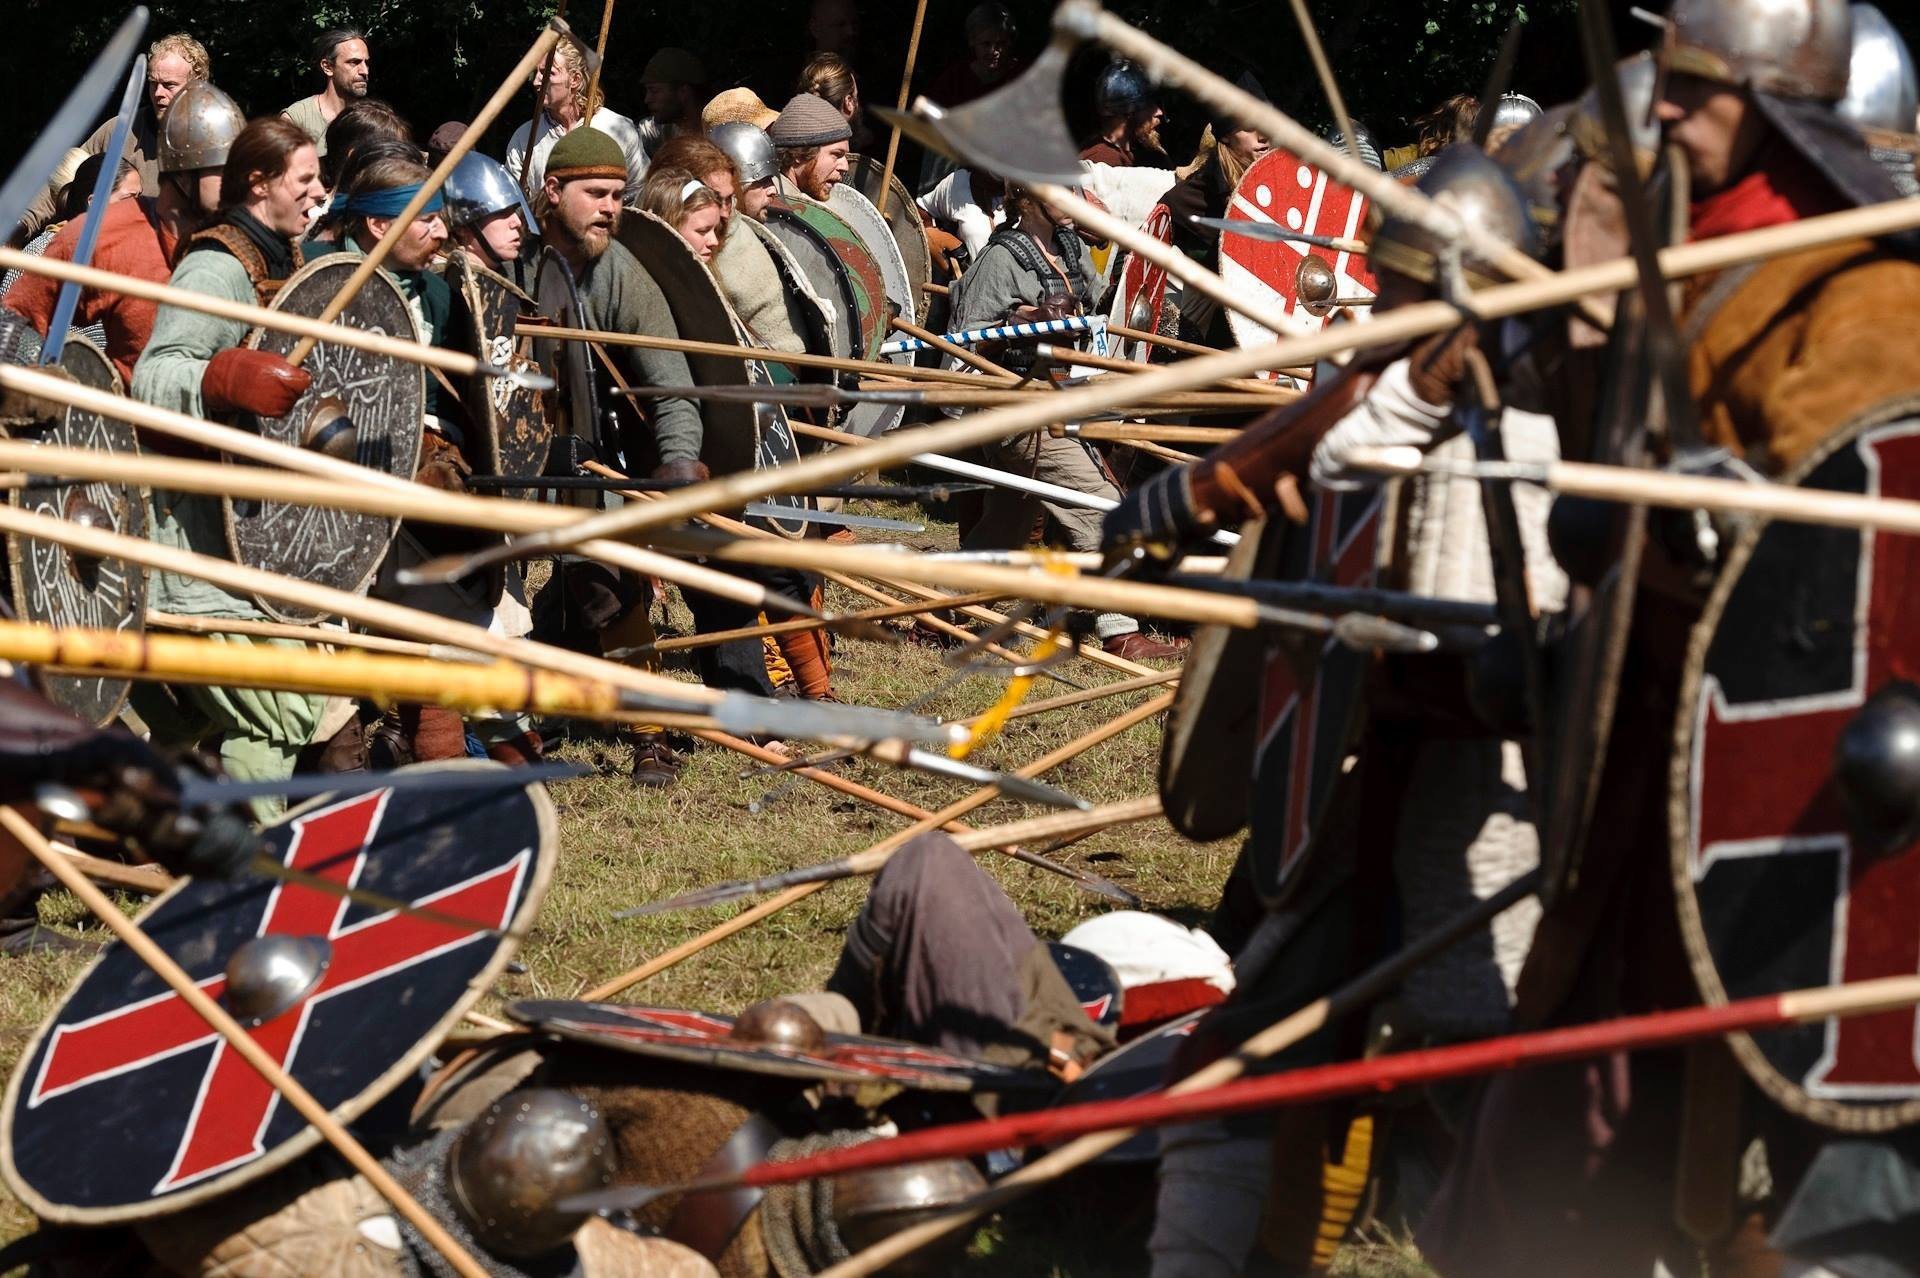 Best time for Moesgård Viking Moot in Denmark